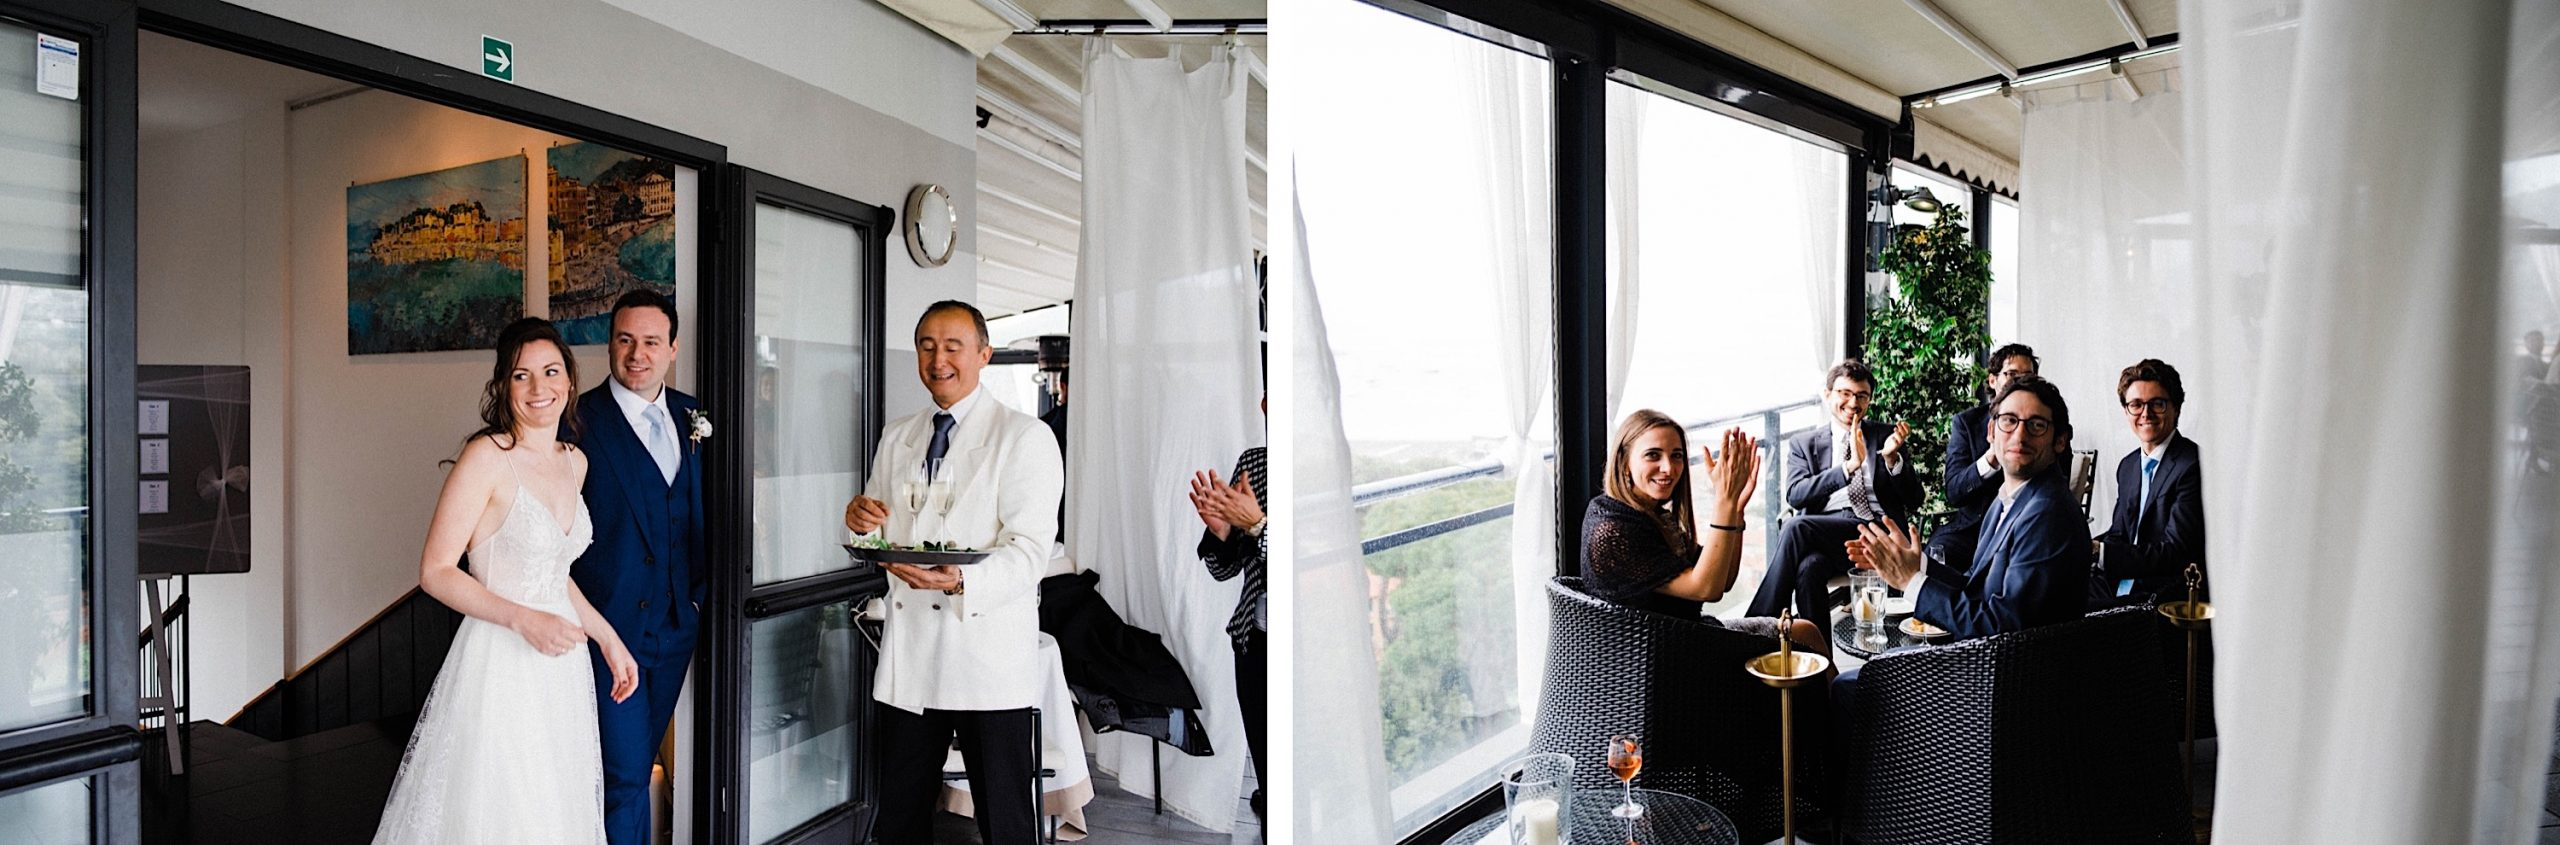 Two photos from a Wedding Reception at the Hotel Vis À Vis of the bride & groom entering the rooftop aperitivo and guests cheering.